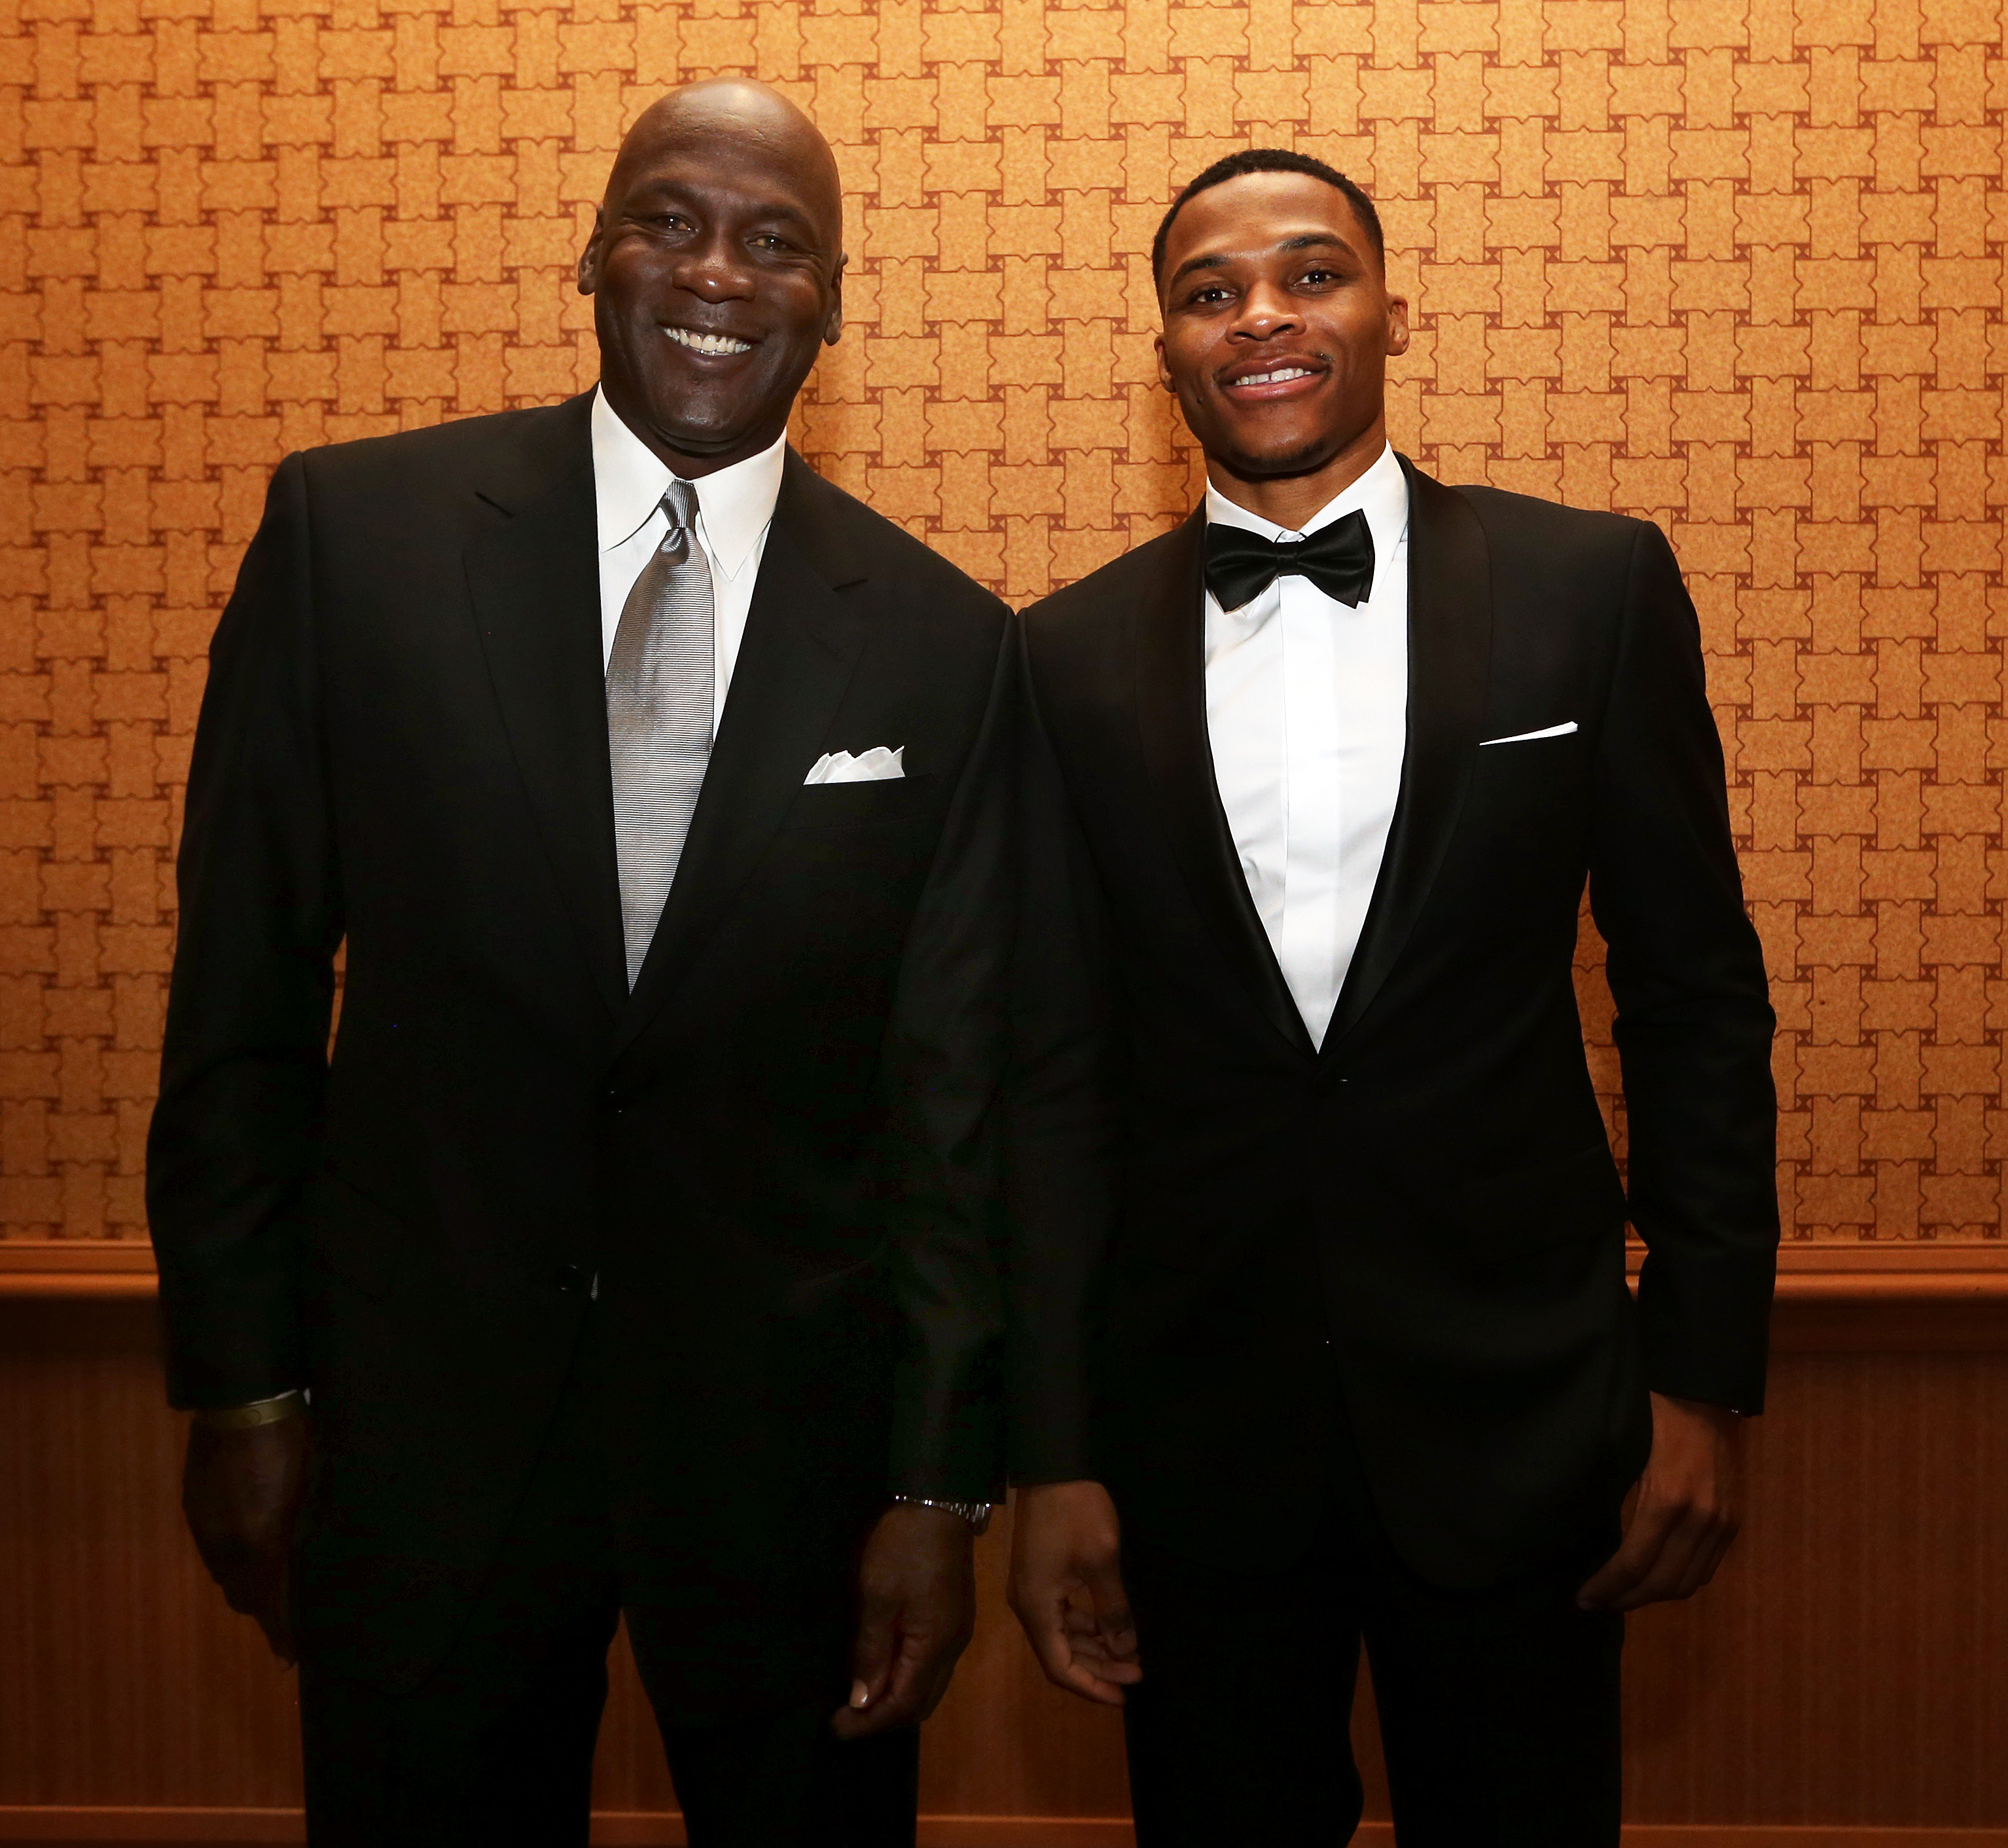 OKLAHOMA CITY, OK - NOVEMBER 17: Oklahoma City Thunder guard Russell Westbrook is inducted into the Oklahoma Hall of Fame by NBA legend Michael Jordan on November 17, 2016 at the Cox Convention Center in Oklahoma City, Oklahoma. NOTE TO USER: User expressly acknowledges and agrees that, by downloading and or using this Photograph, user is consenting to the terms and conditions of the Getty Images License Agreement. Mandatory Copyright Notice: Copyright 2016 NBAE (Photo by Layne Murdoch/NBAE via Getty Images)